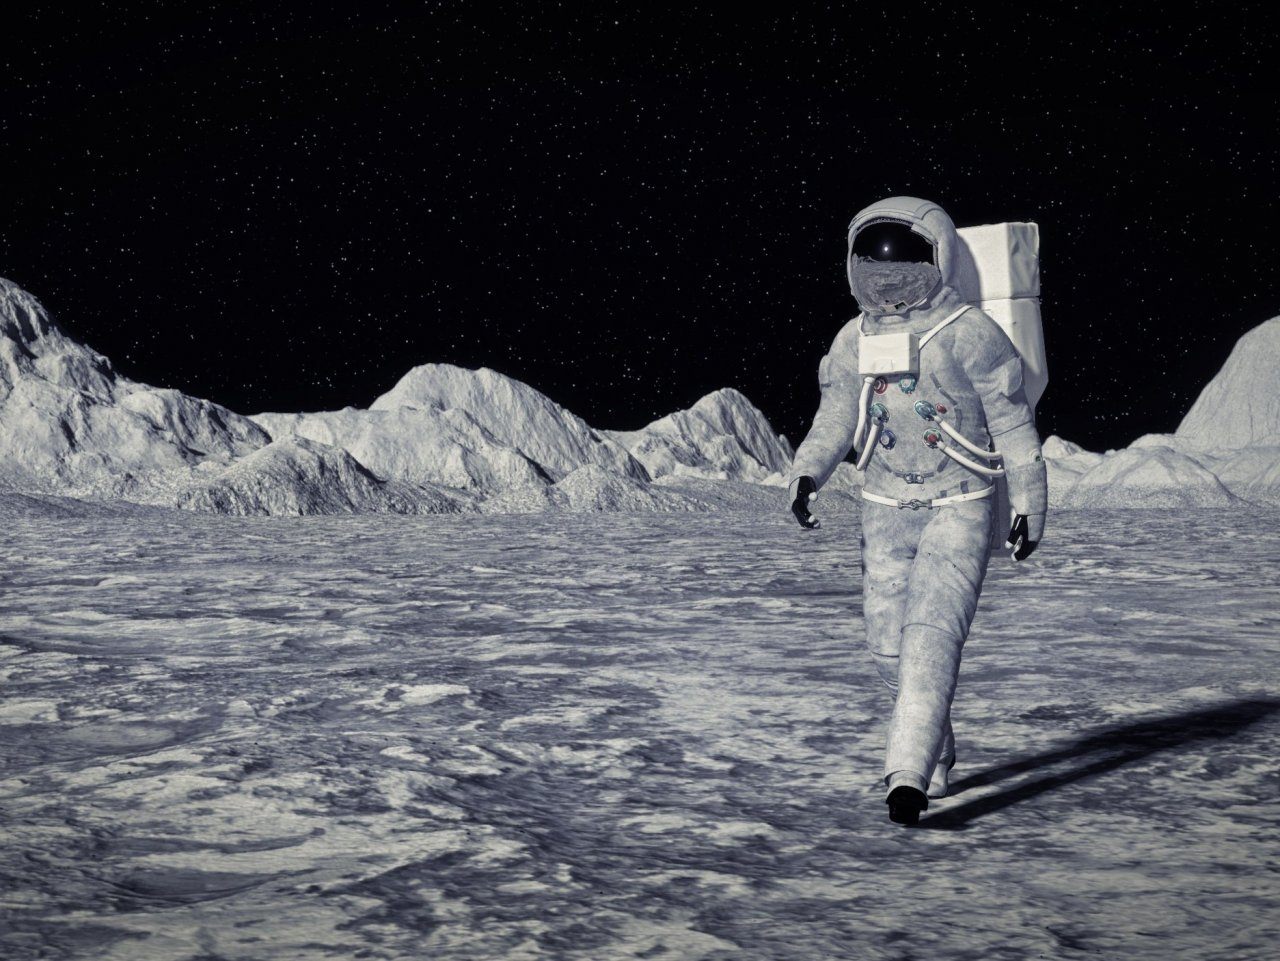 Man on the moon jigsaw puzzle